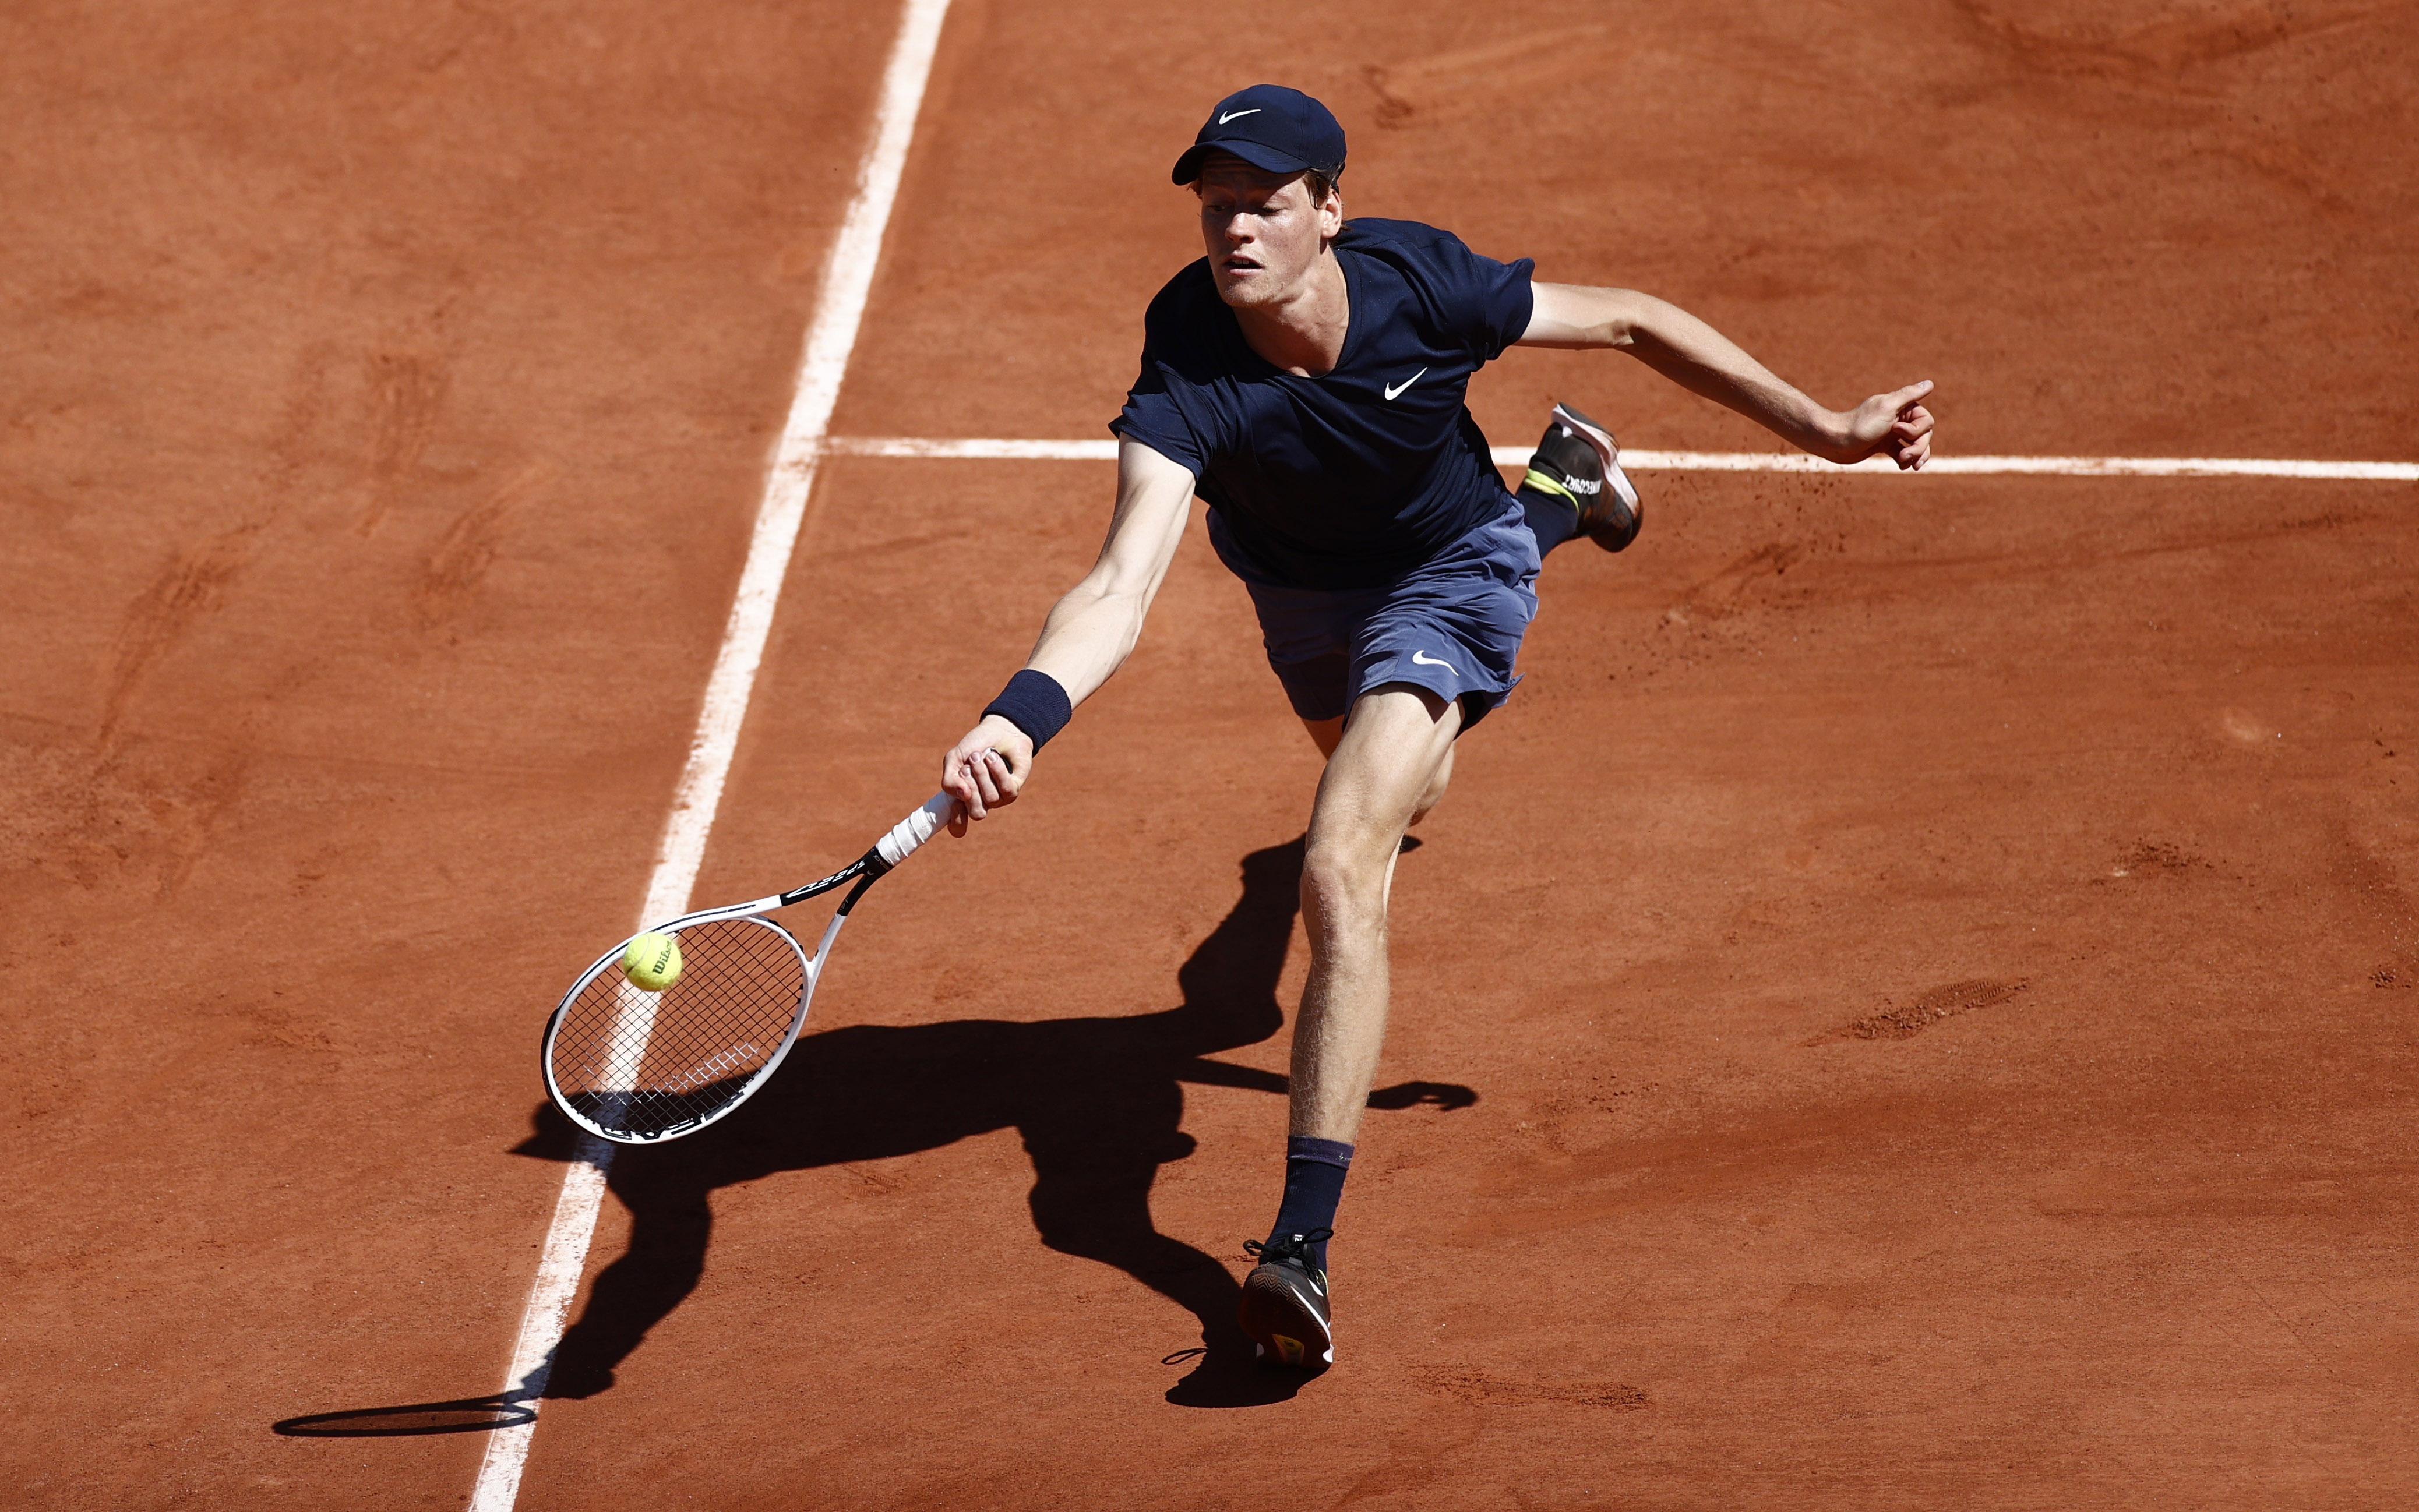 Tennis - French Open - Roland Garros, Paris, France - May 31, 2021 Italy's Jannik Sinner in action during his first round match against France's Pierre-Hugues Herbert REUTERS/Christian Hartmann